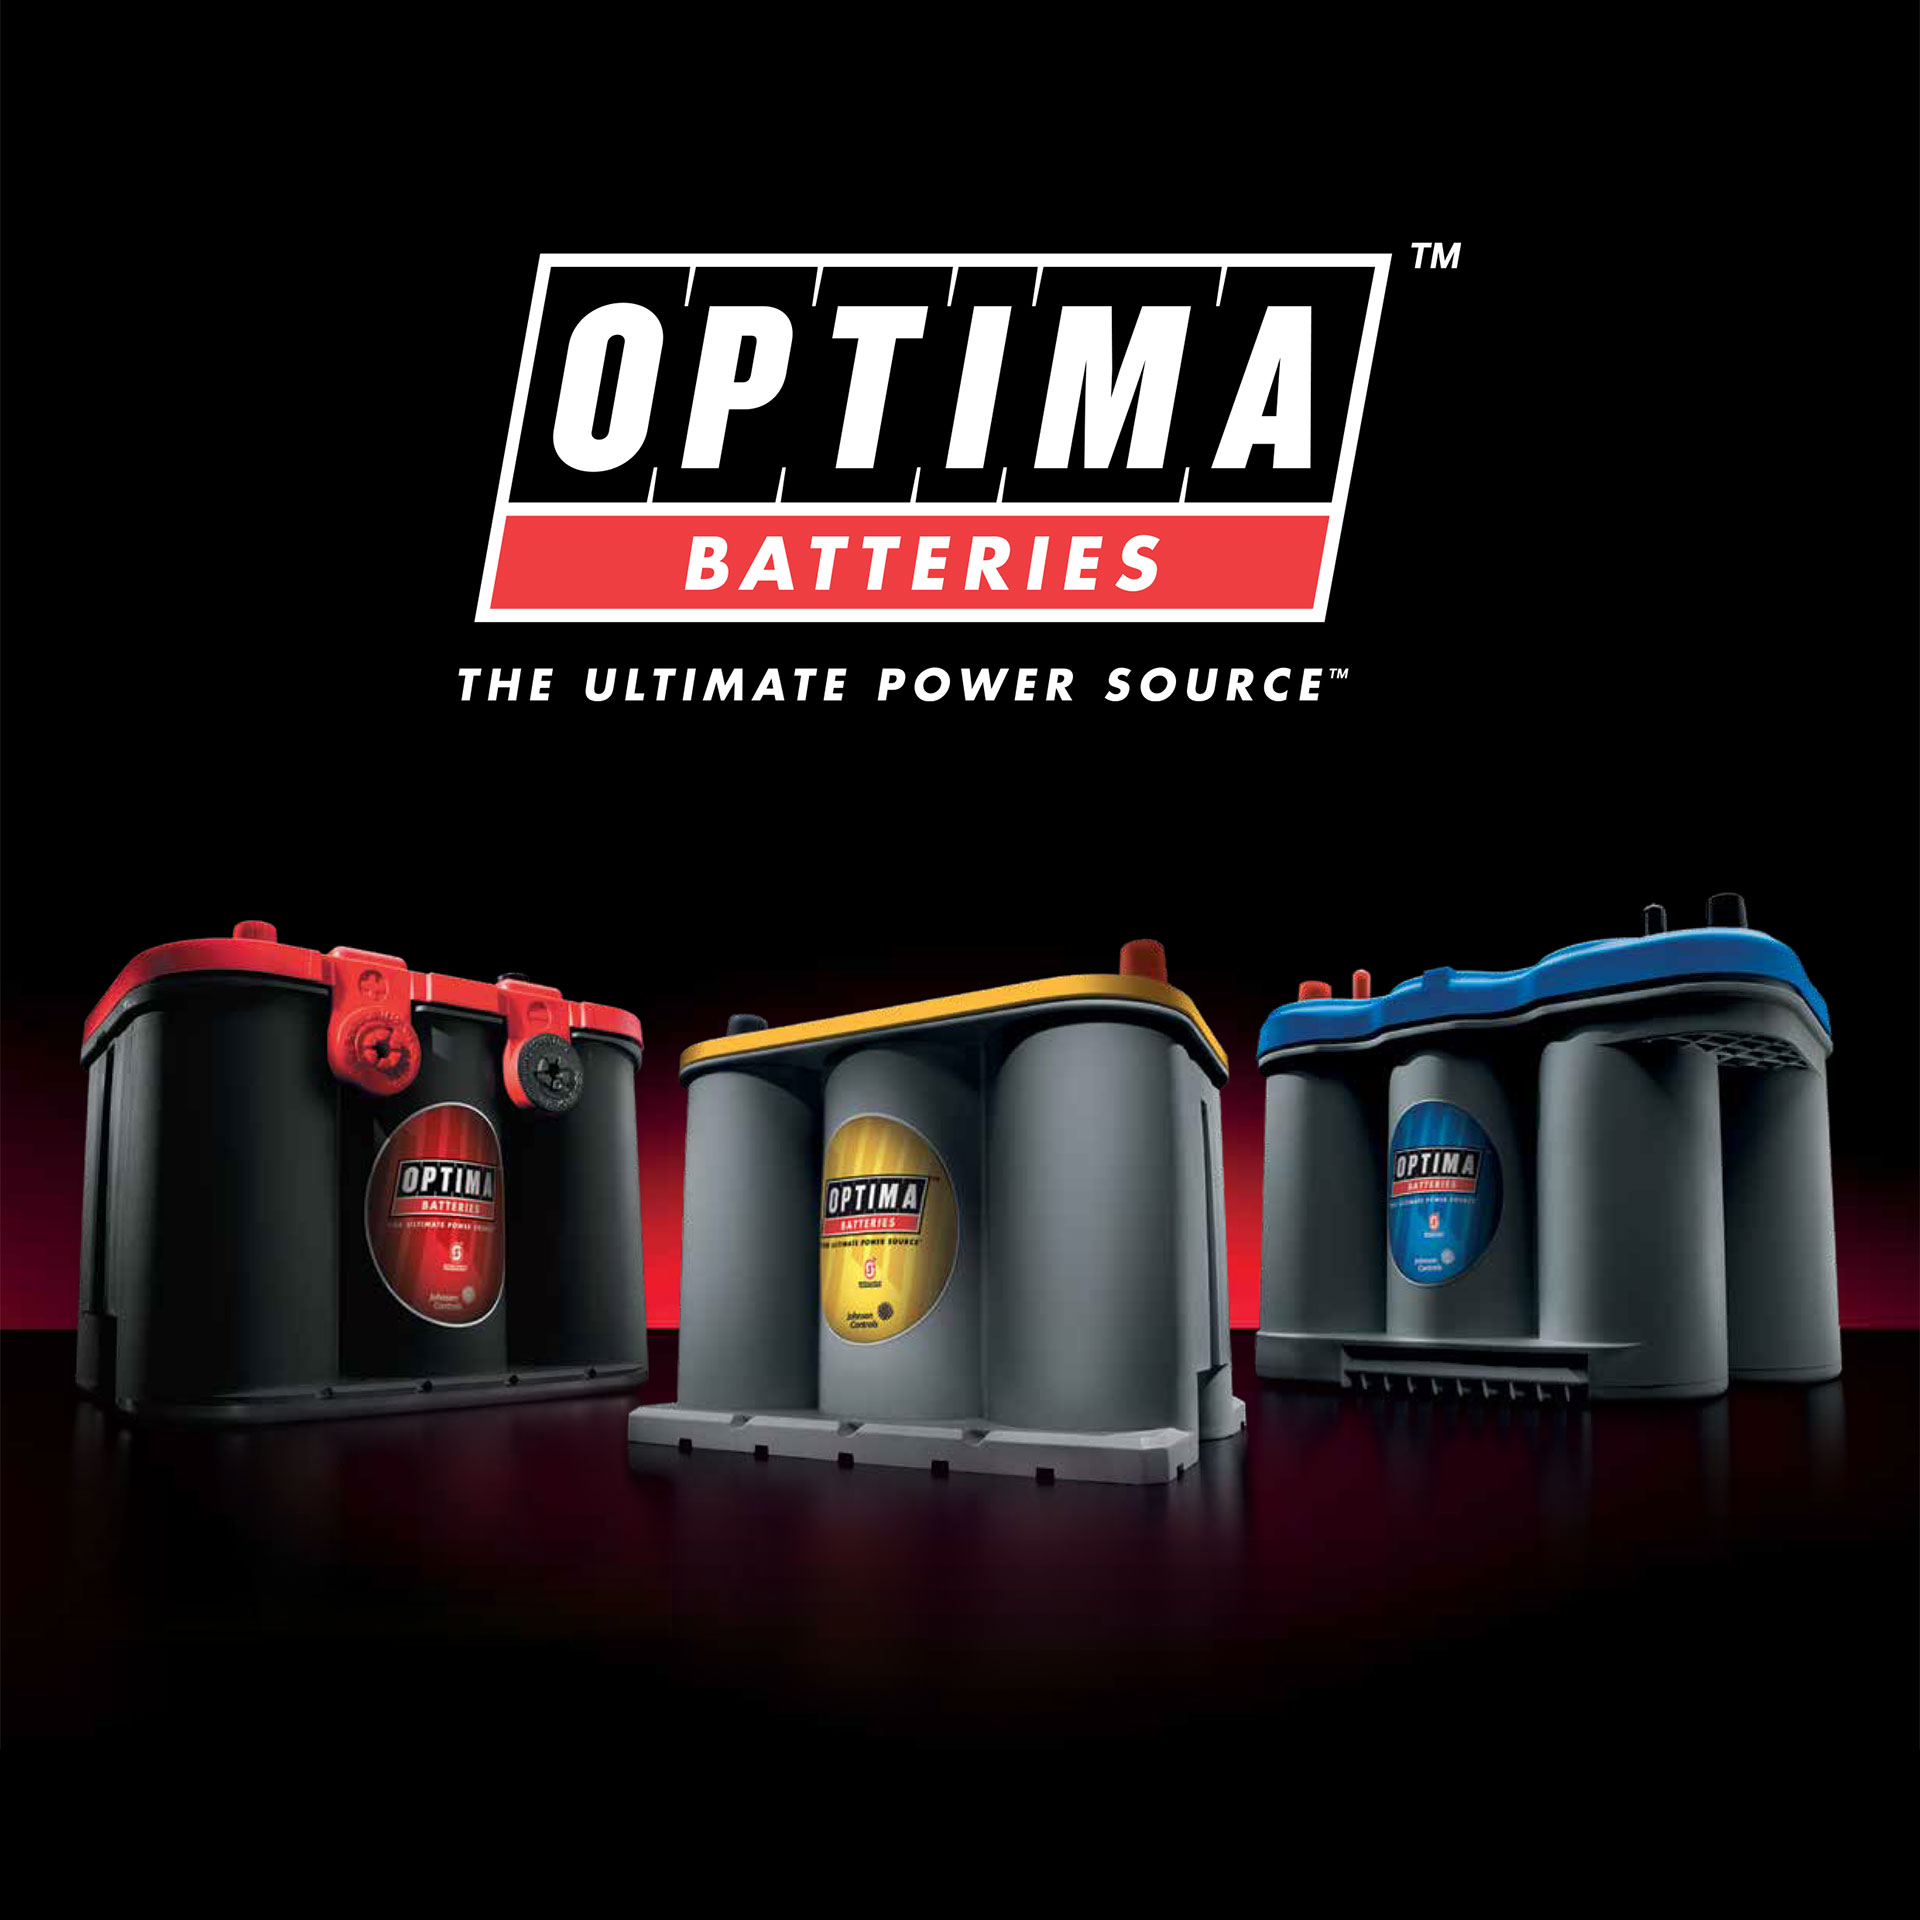 optima-batteries